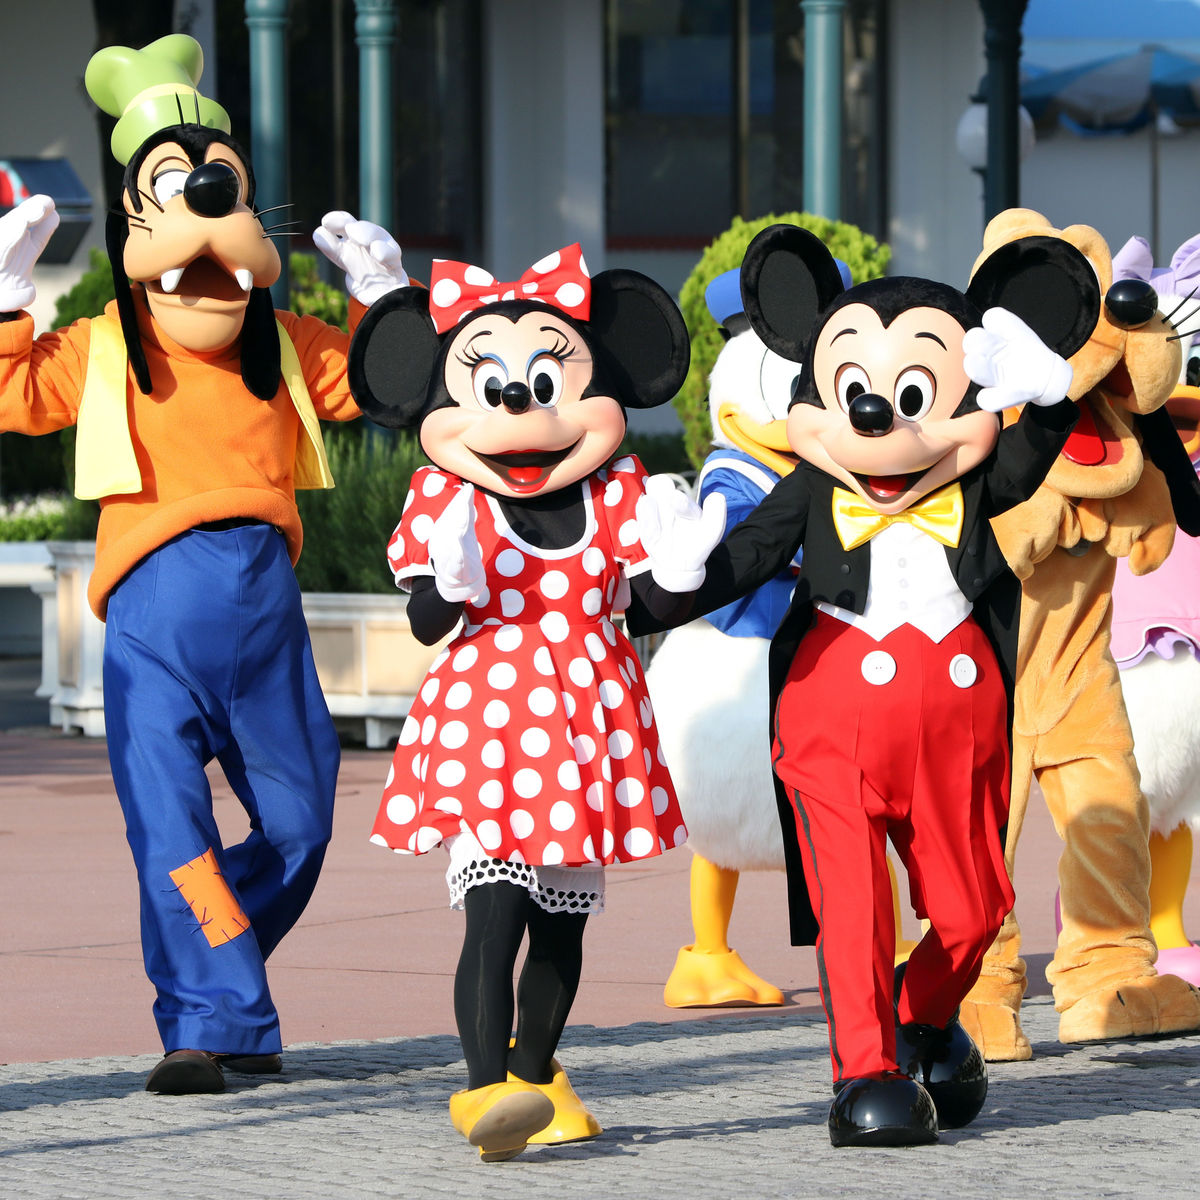 Mickey Mouse Minnie Mouse Goofy